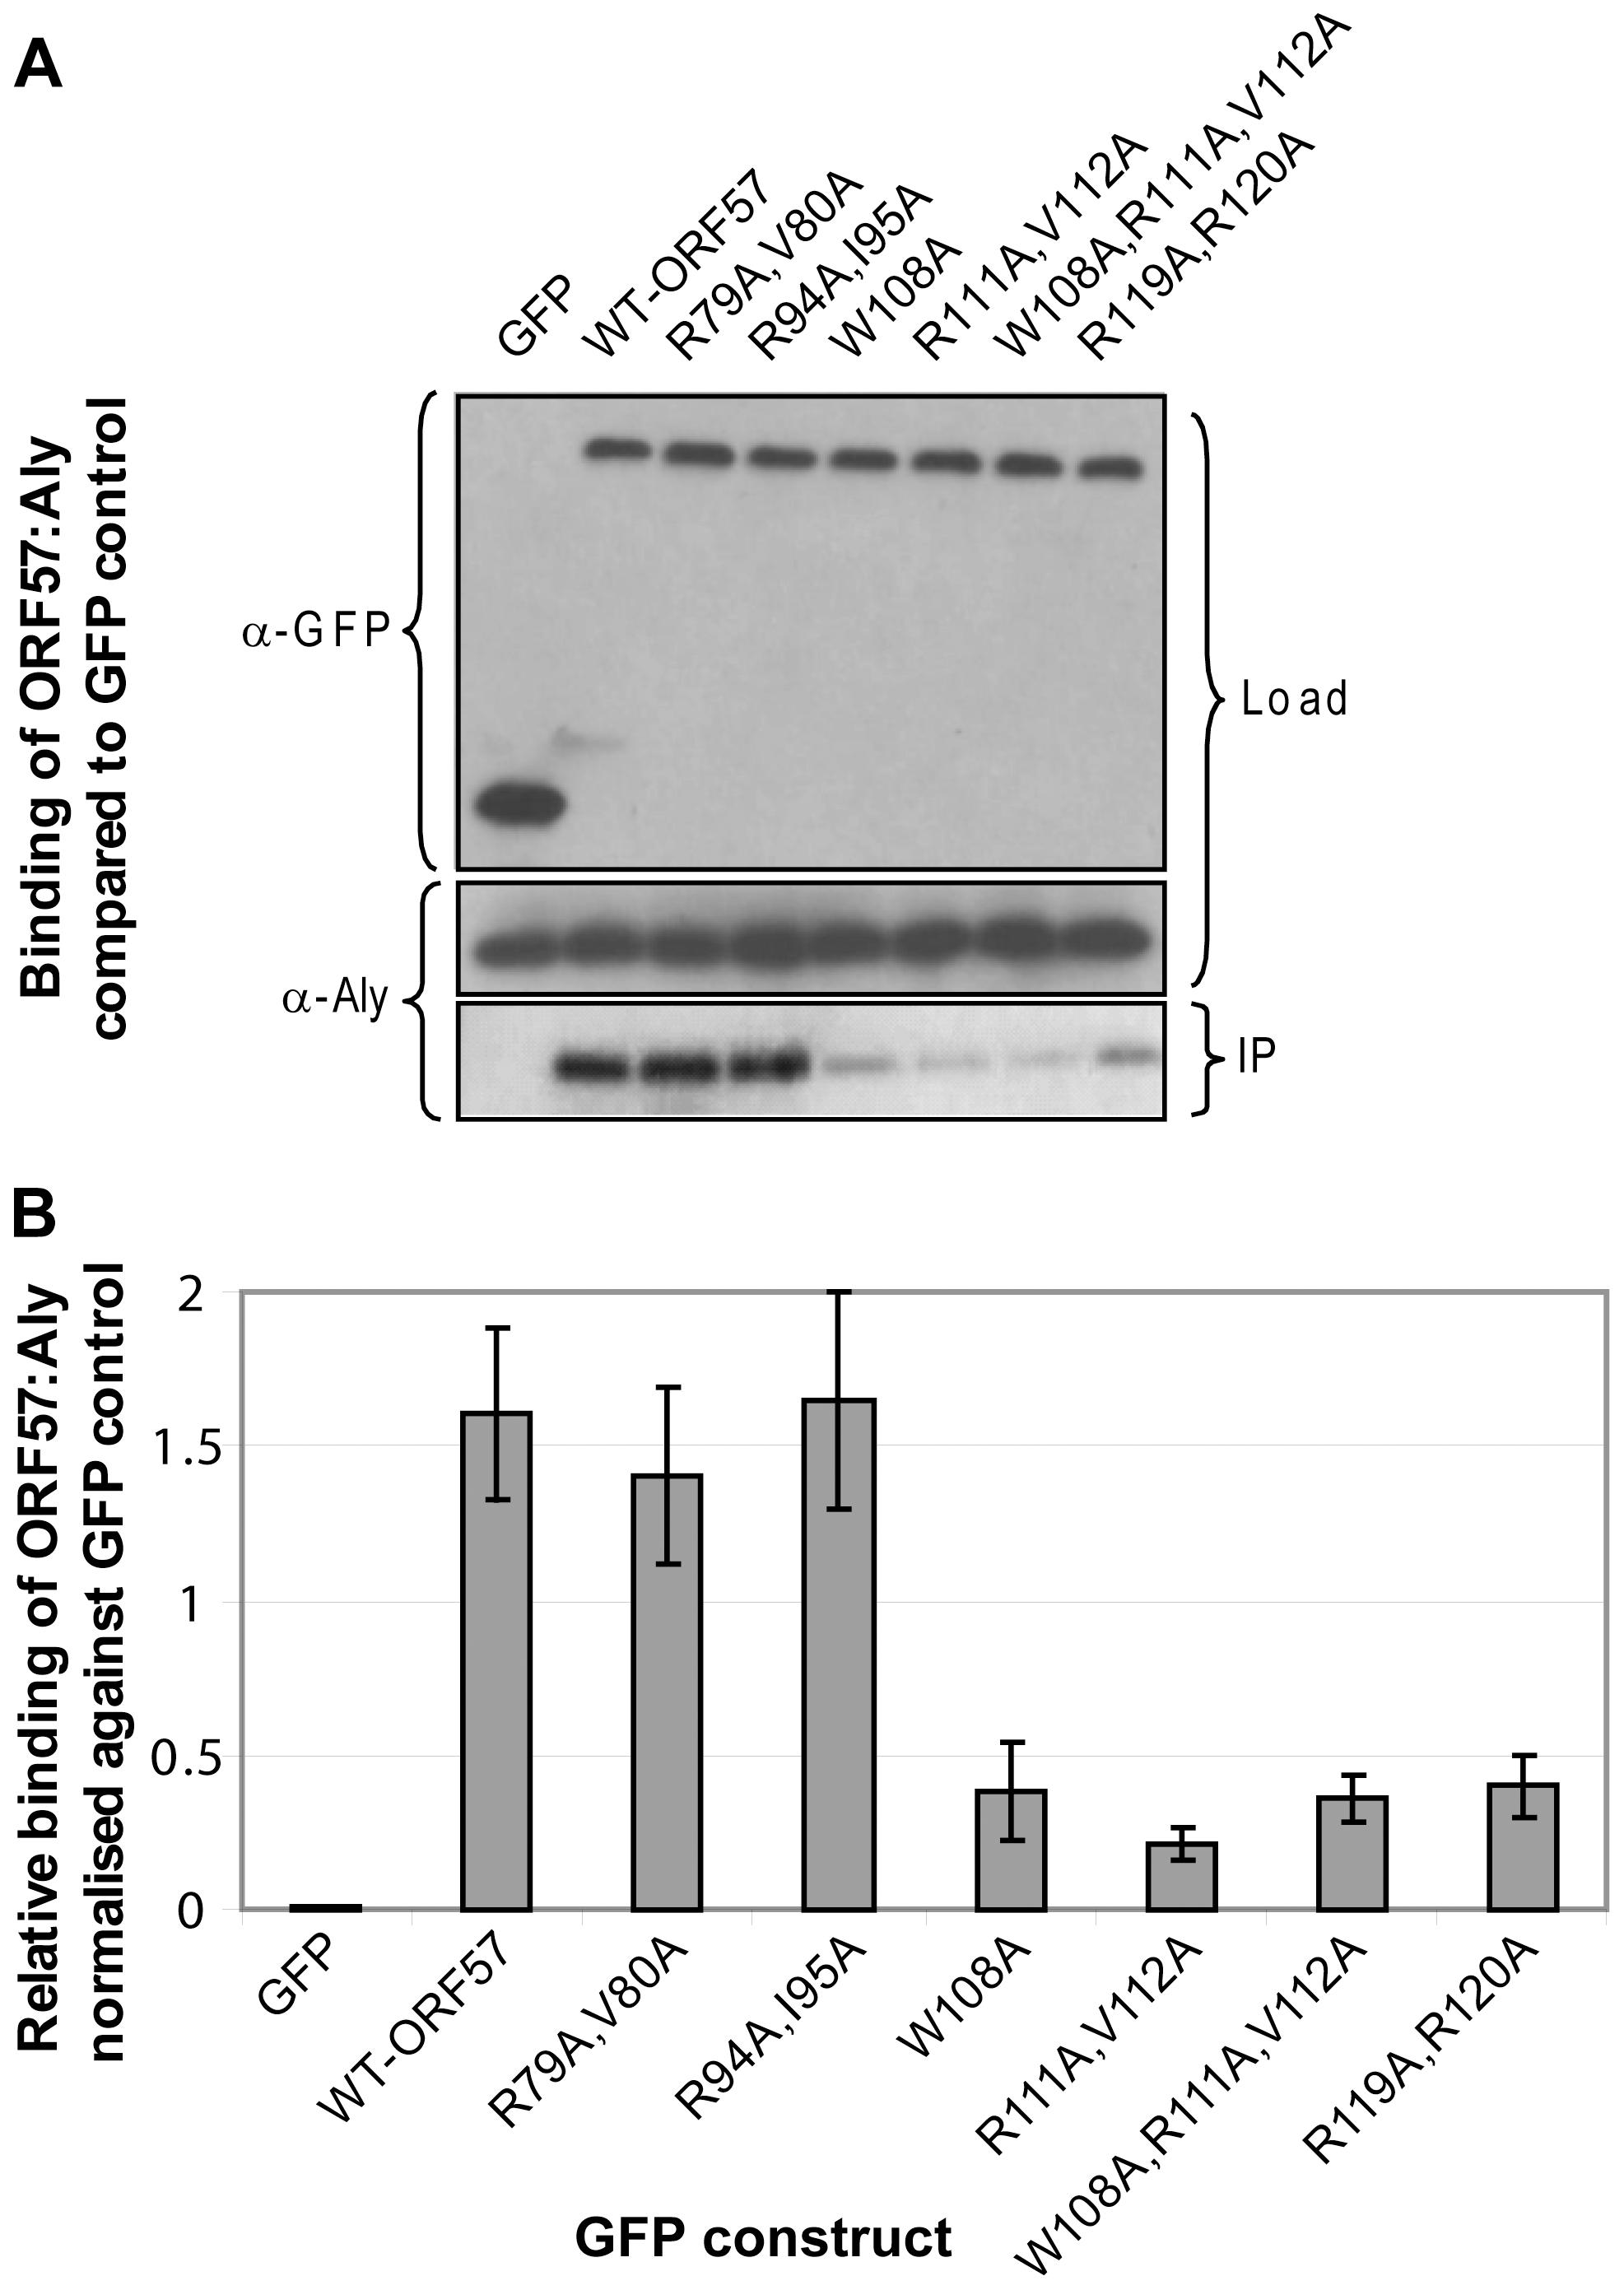 Functional importance of the identified REF binding site for the interaction of ORF57 with human Aly.